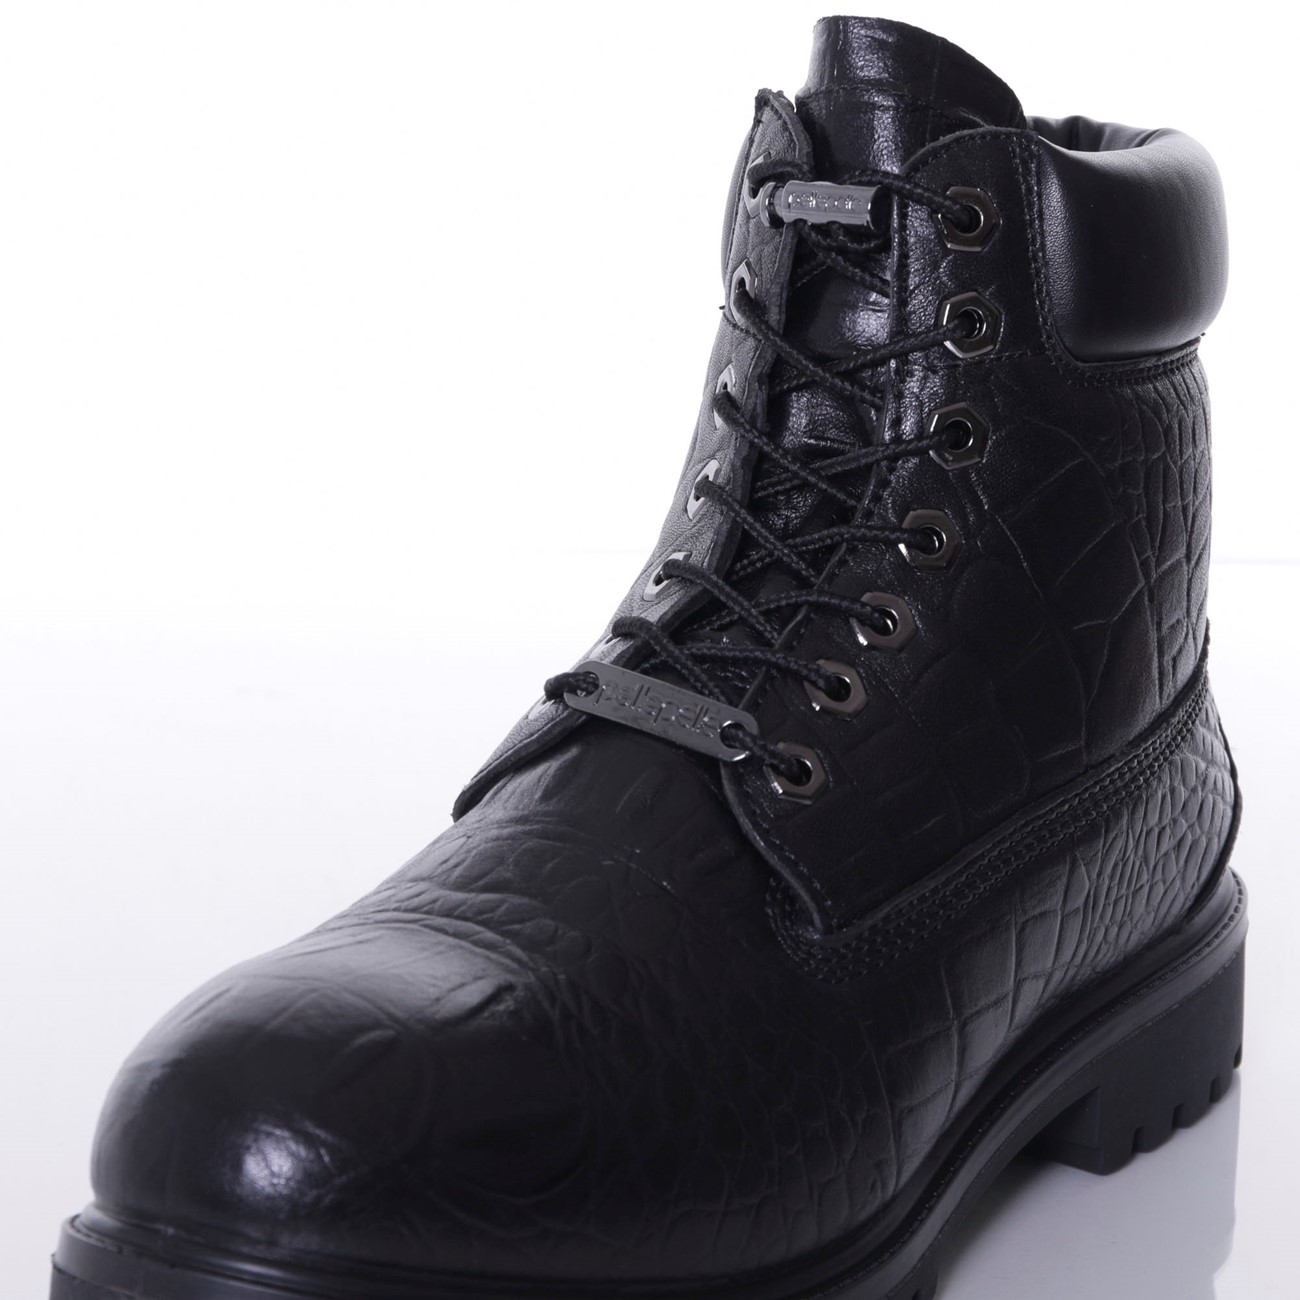 a5408f12 ... adidas t skjorter - http://ddstatic.dk/images/products/ ...